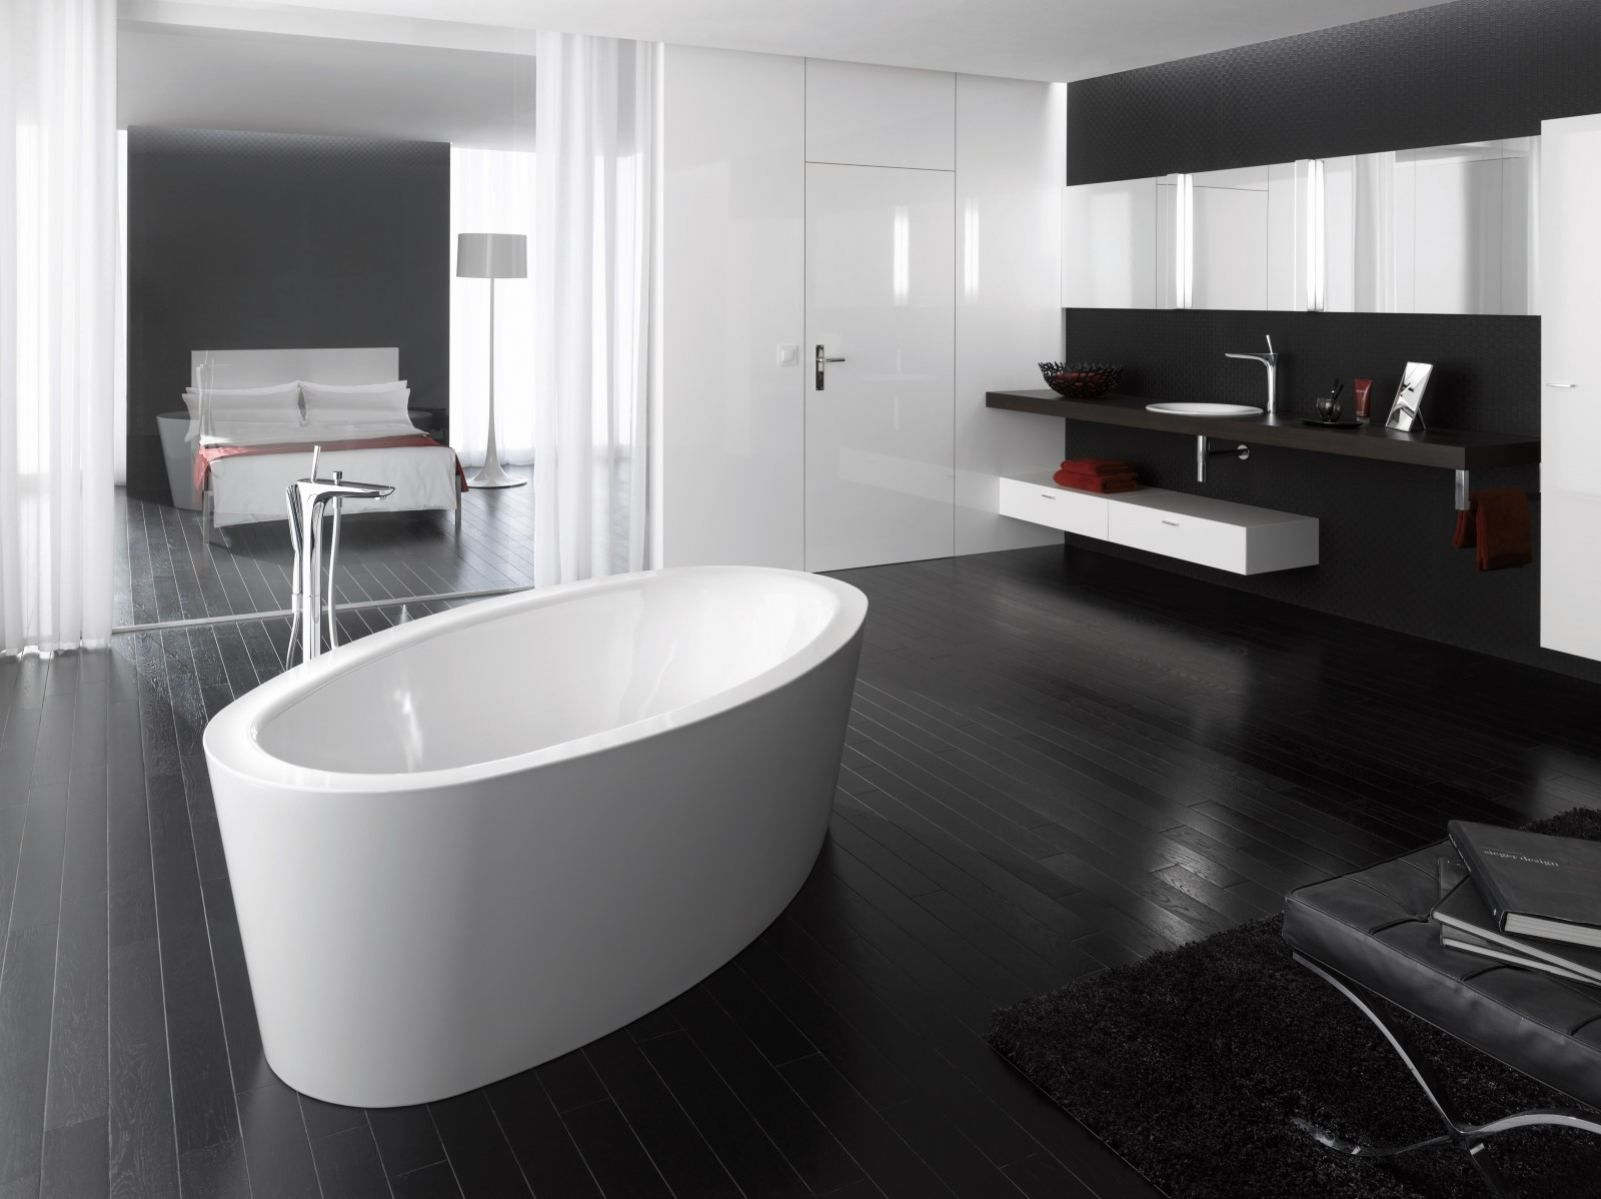 oval badewanne freistehende ovalbadewanne mit konischer fugenlos angeformter stahl email. Black Bedroom Furniture Sets. Home Design Ideas